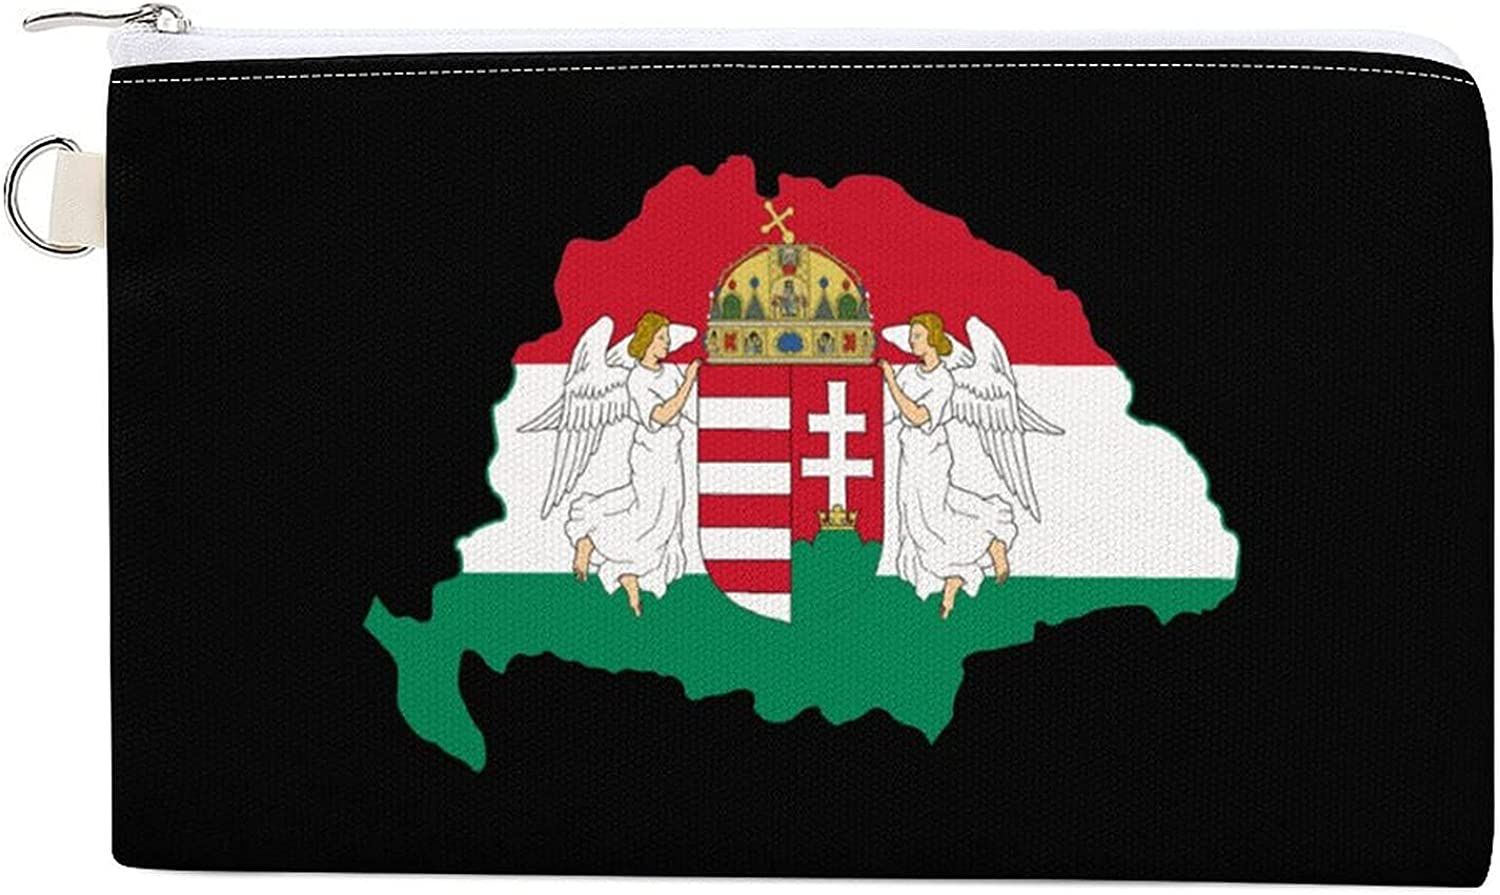 Kingdom of Hungary Flag Map Women's Canvas Coin Purse Change Pouch Zip Wallet Bag